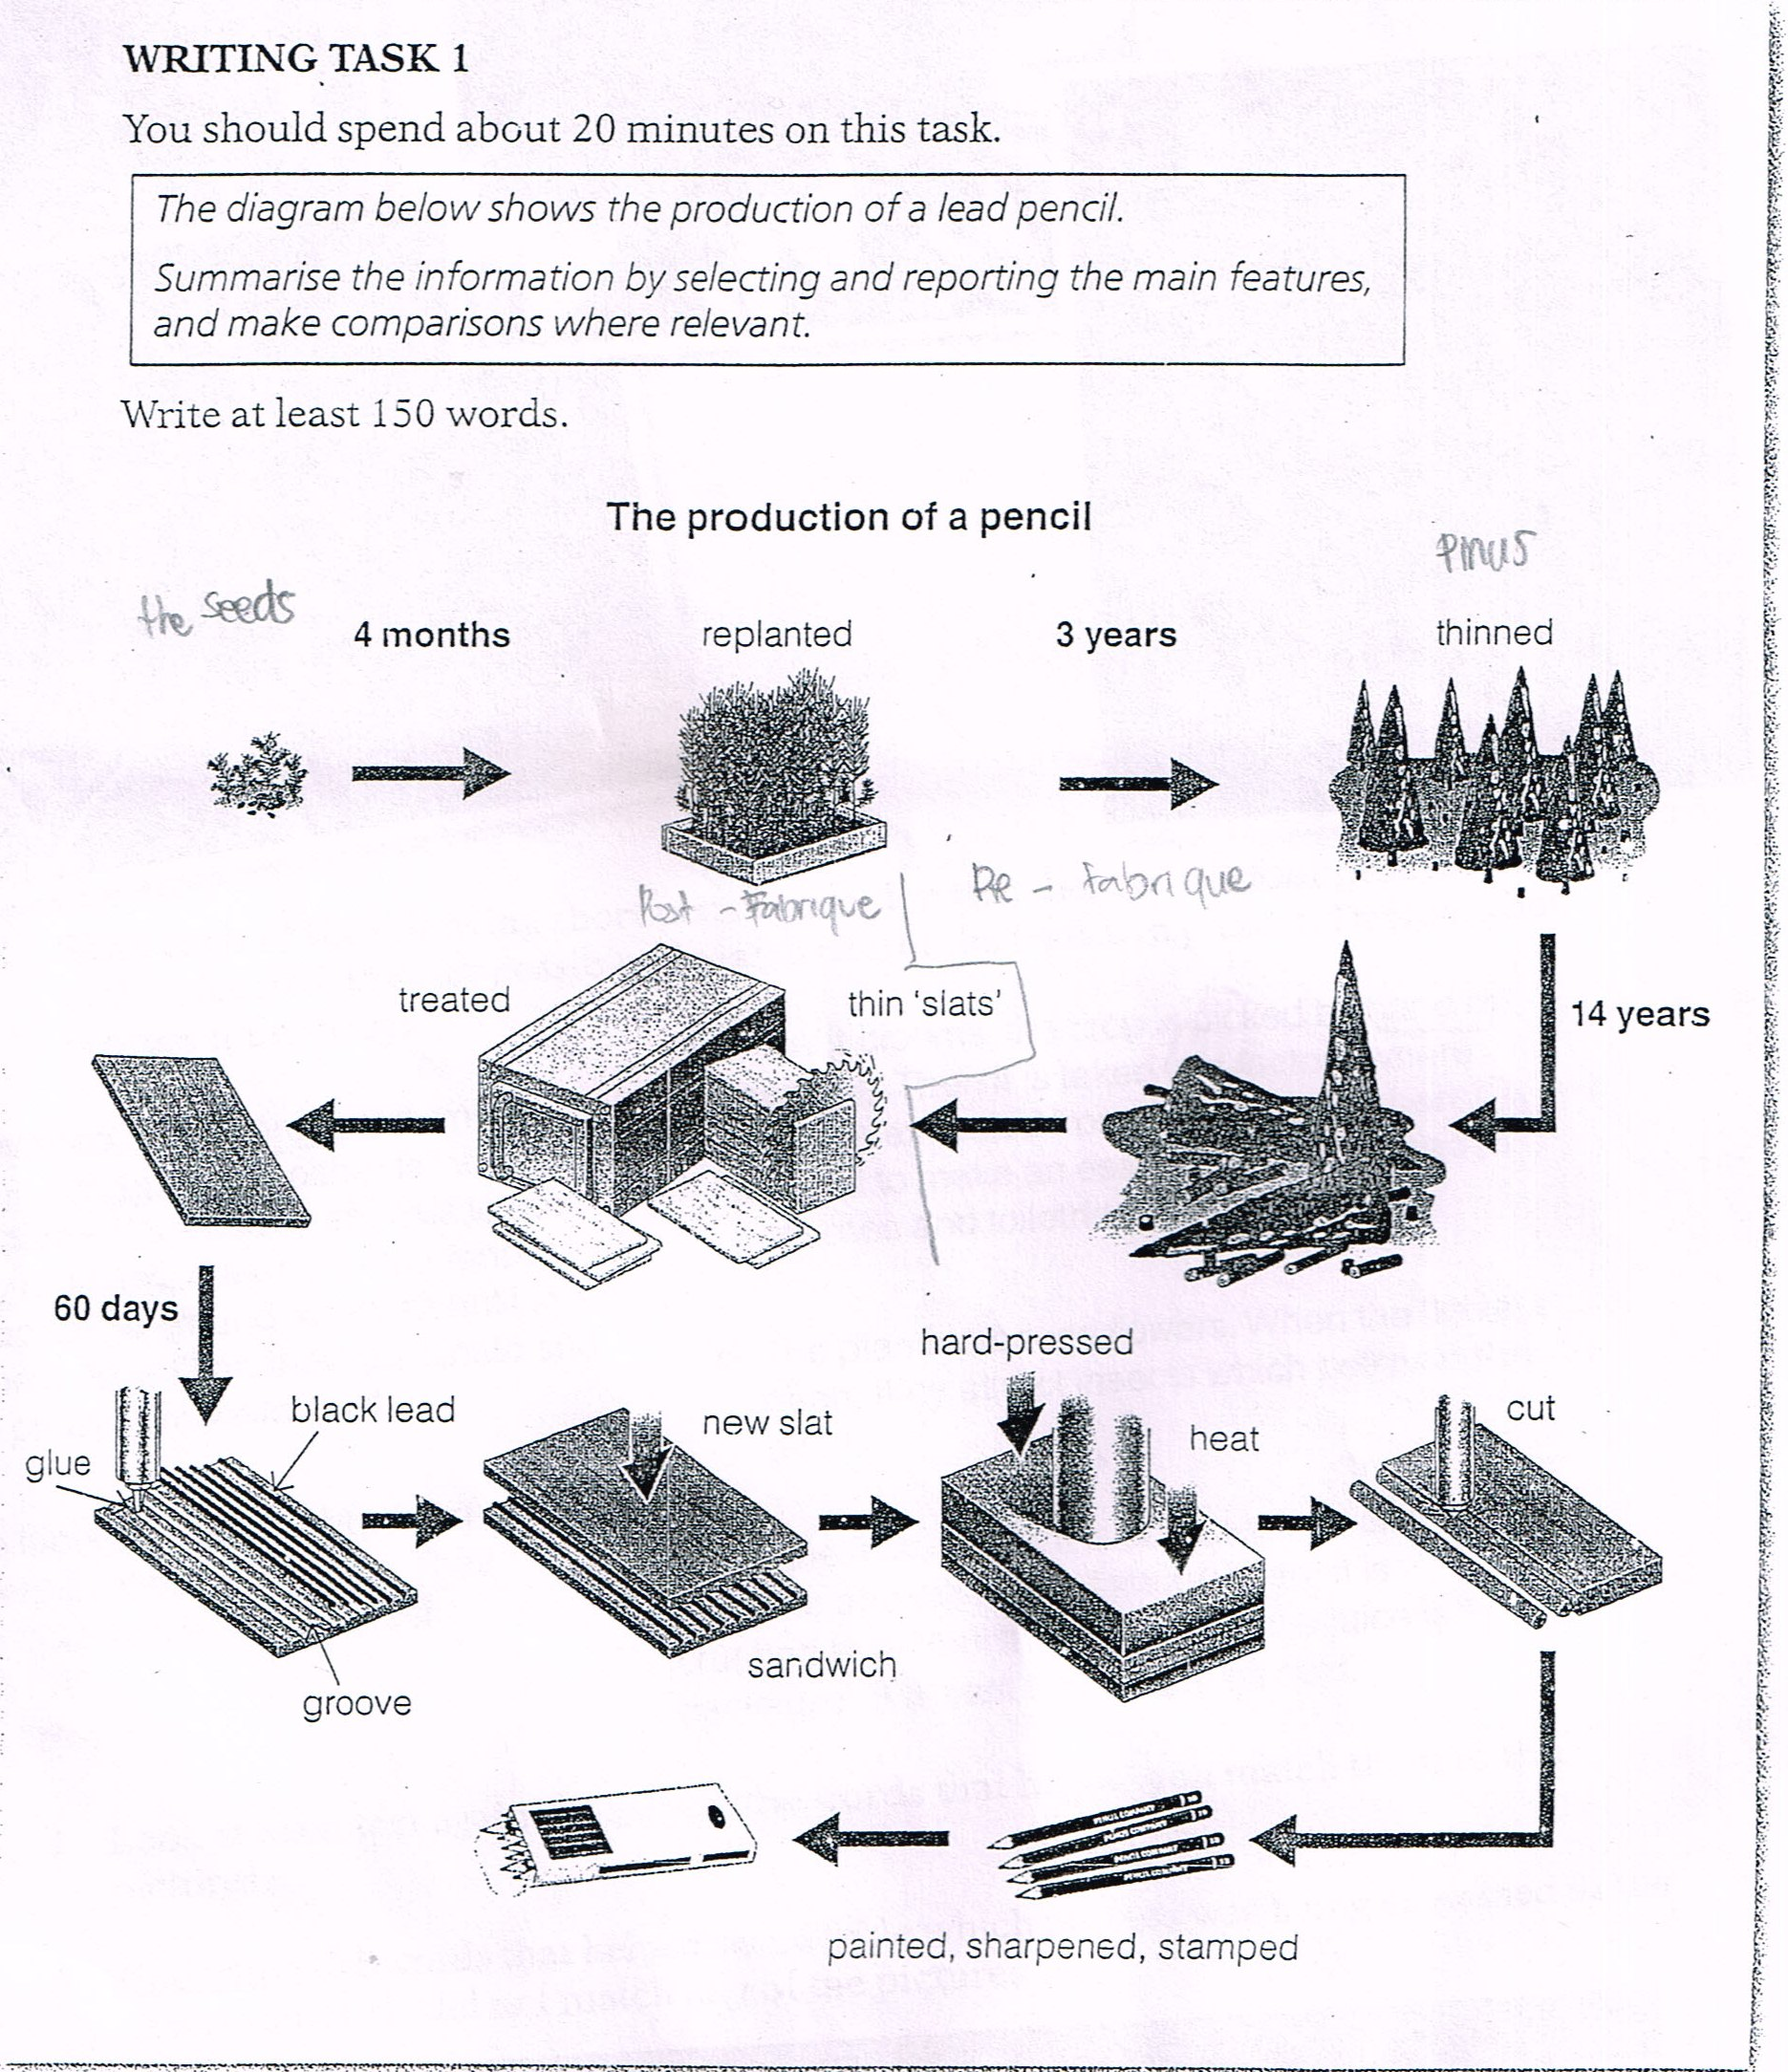 The Diagram Below Shows The Production Of A Lead Pencil